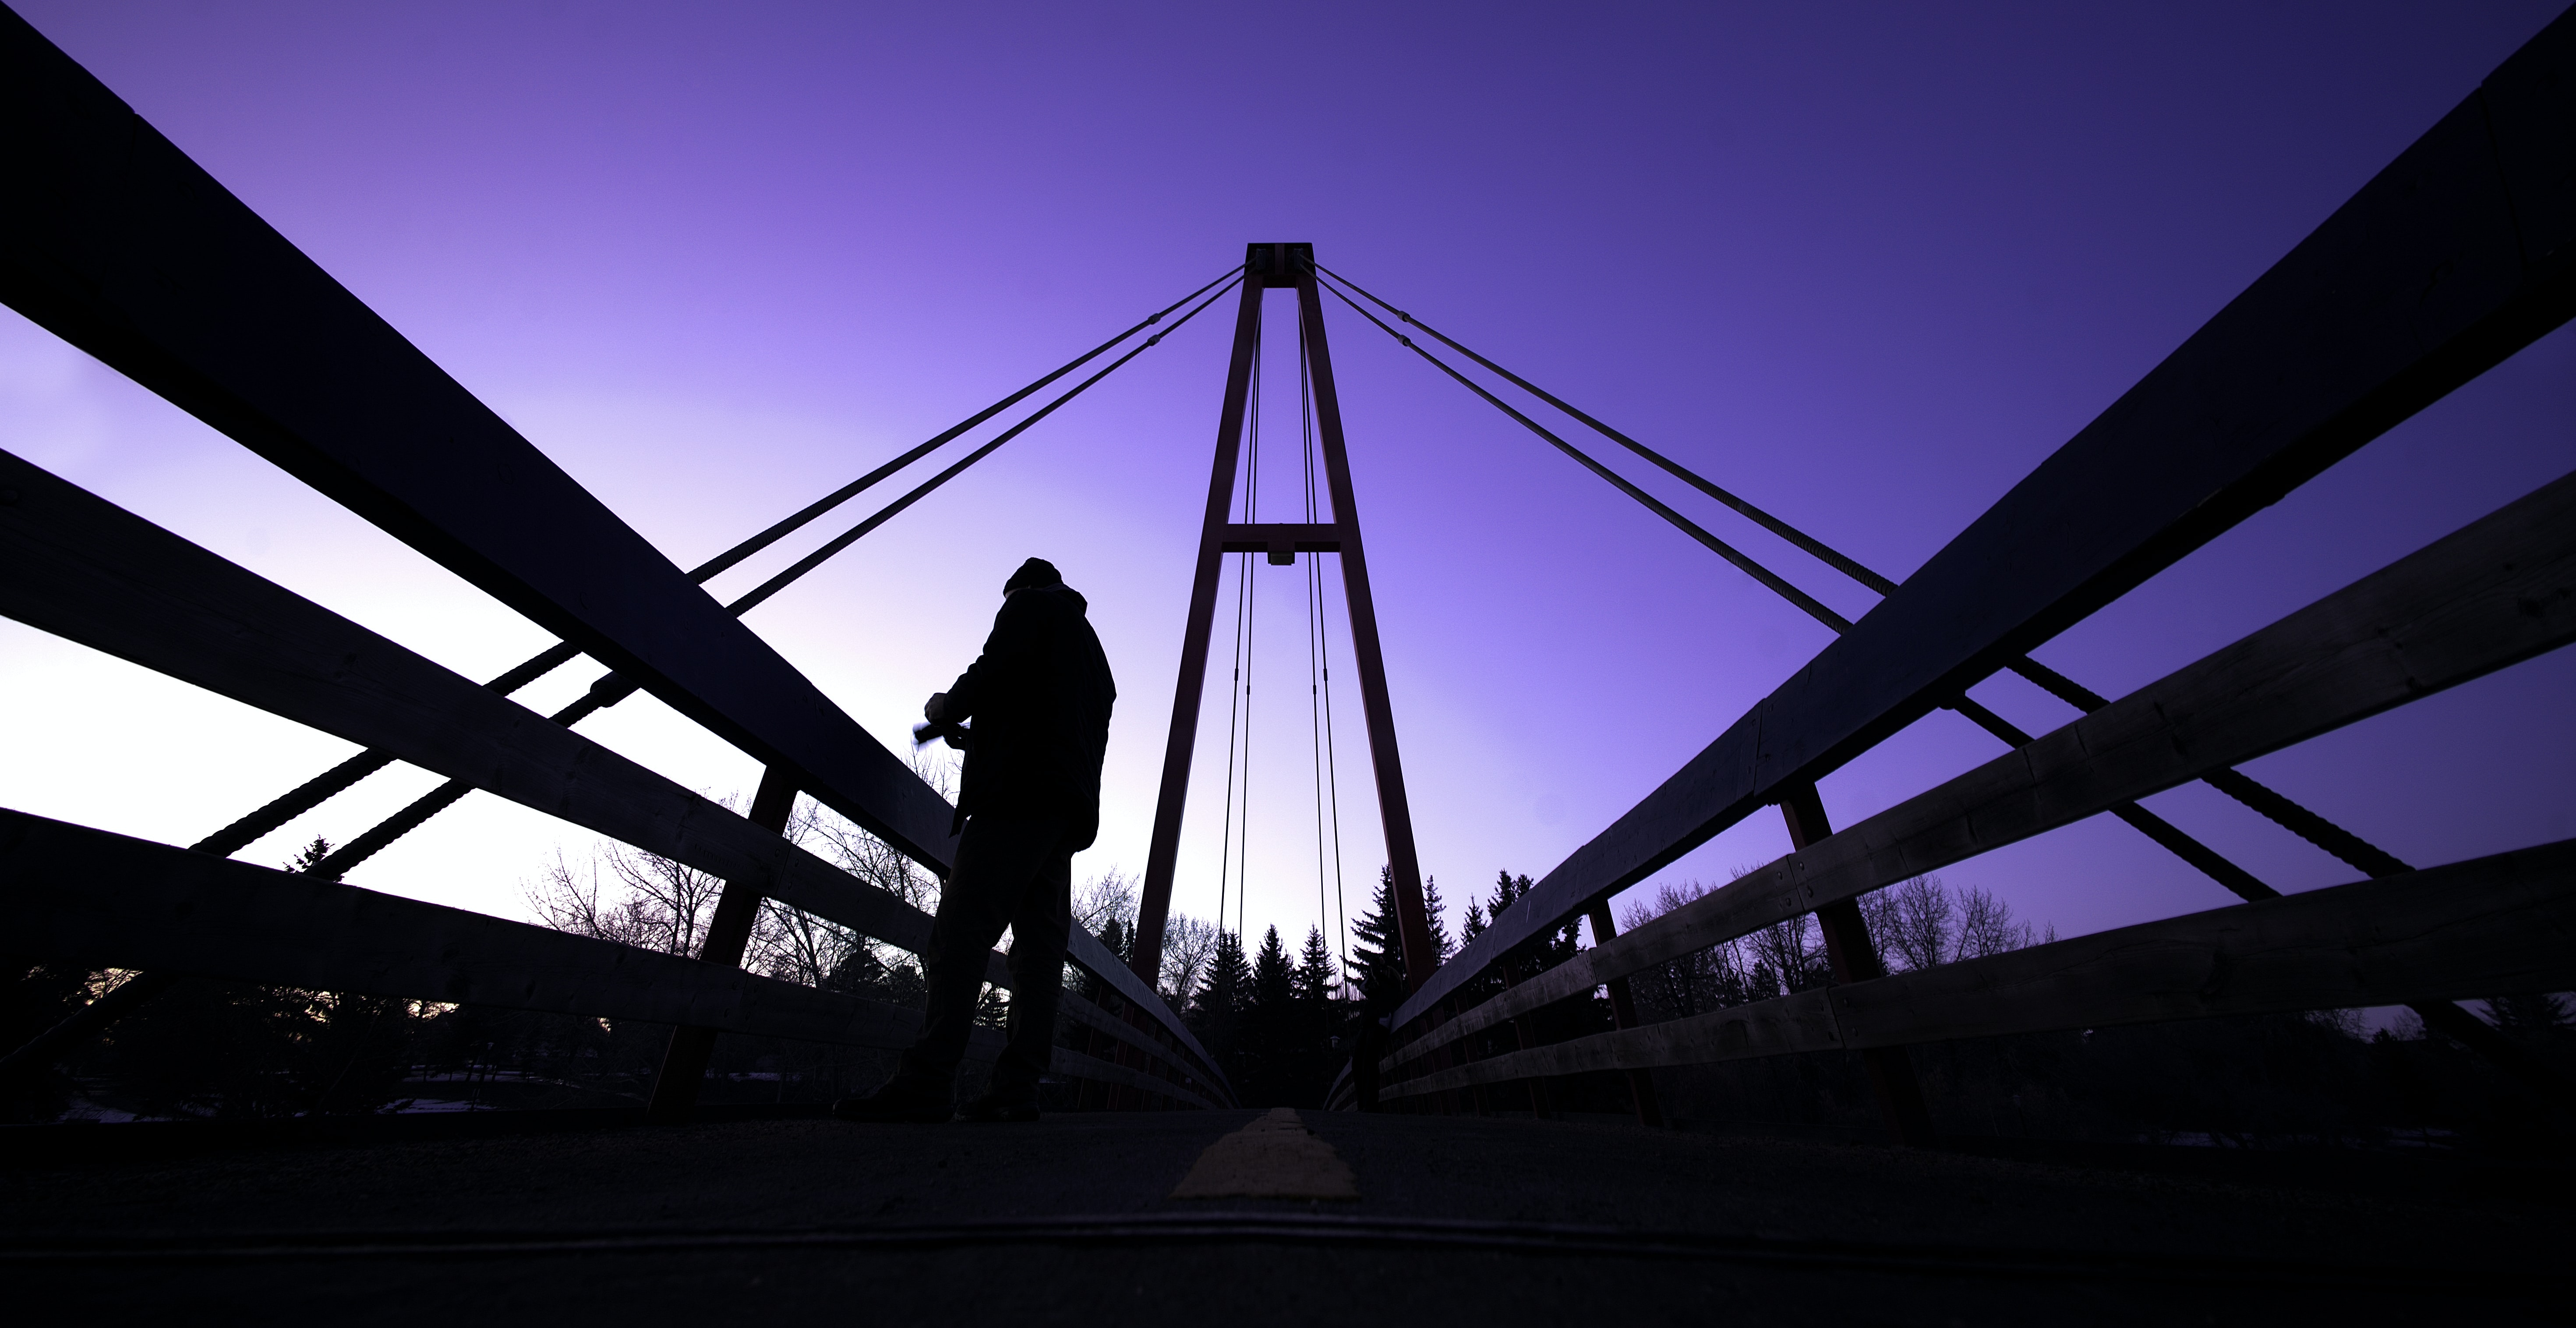 low angle photography of man standing on bridge